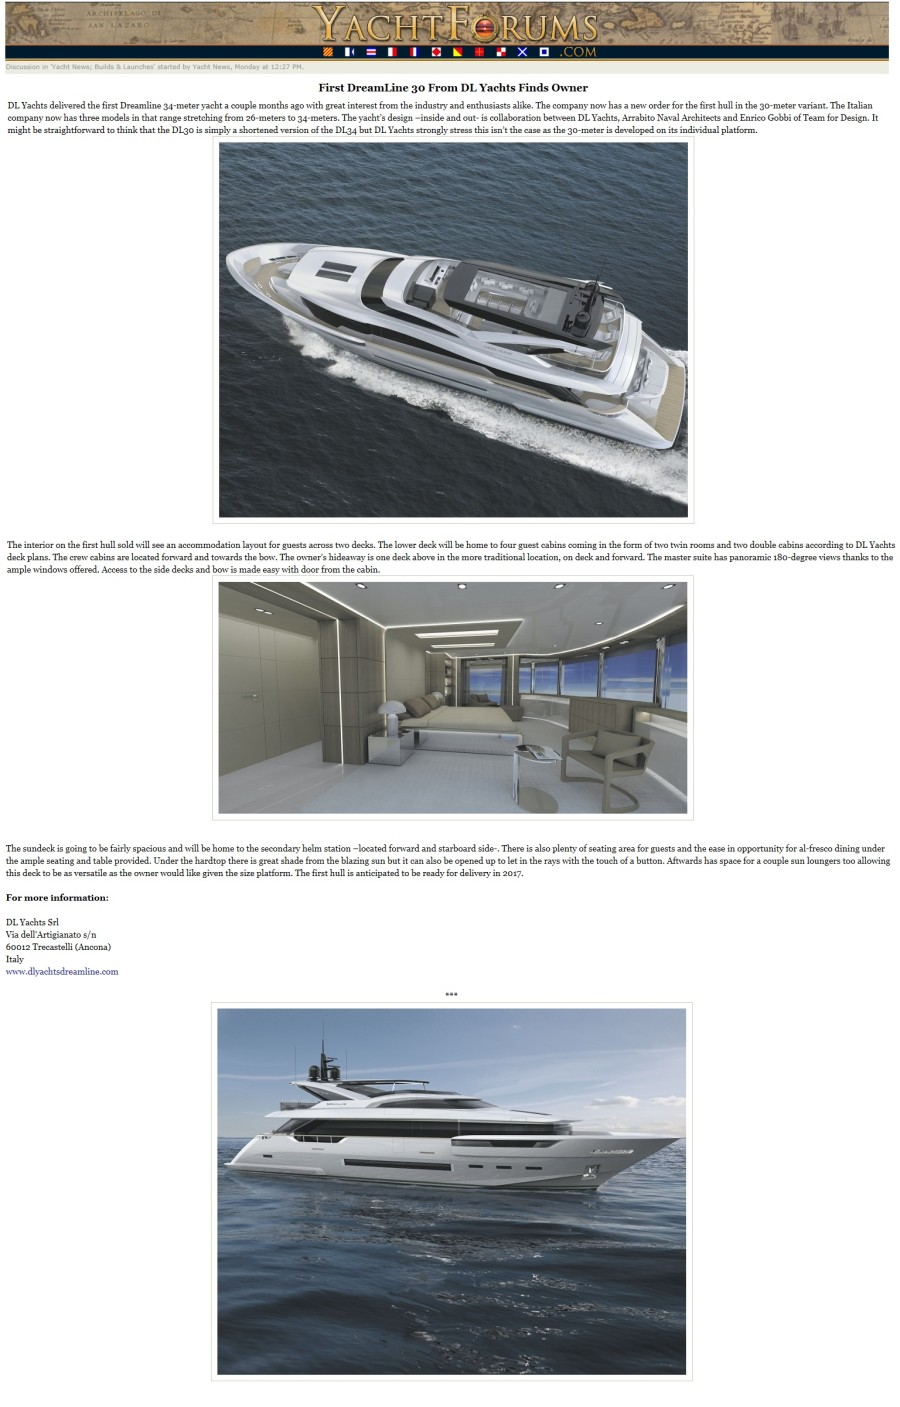 january_2016_yachtforums